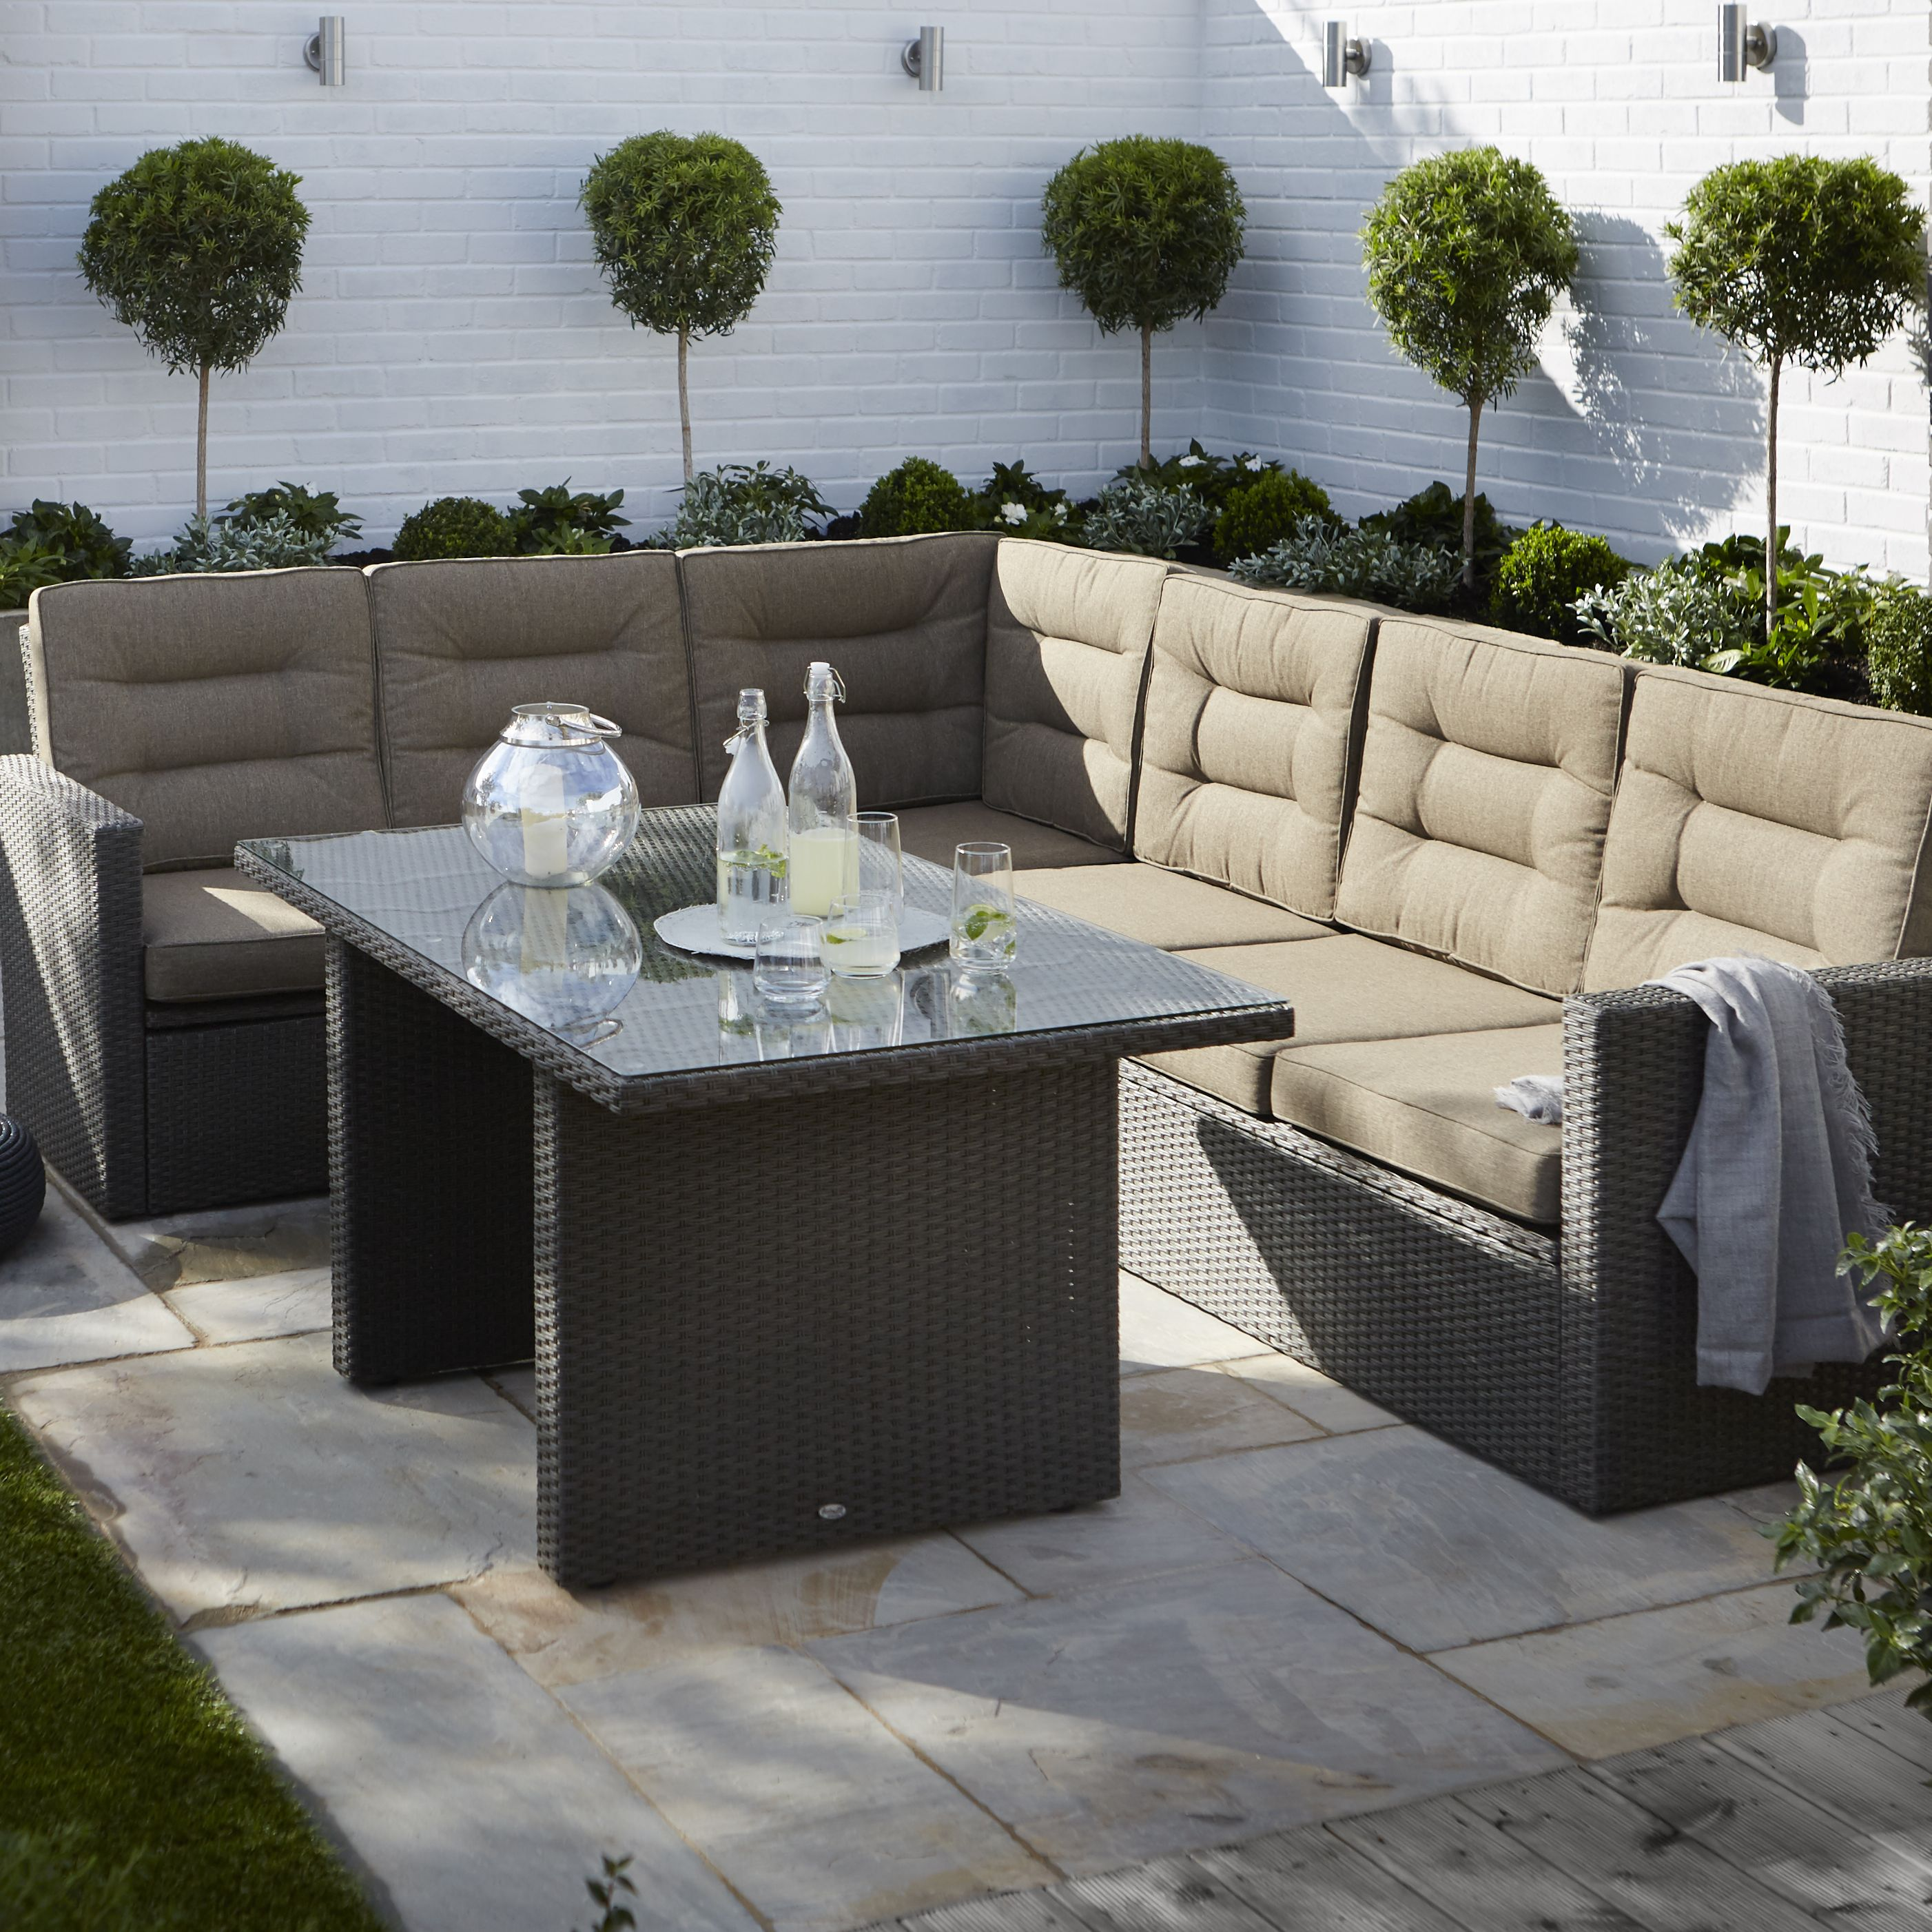 Garden Furniture Garden Equipment : Leisure2016KingtonSET6KINGTONCORNERSETADDITIONAL18crop65437228042804ampanchor20561774ampwid600 from www.diy.com size 600 x 600 jpeg 60kB